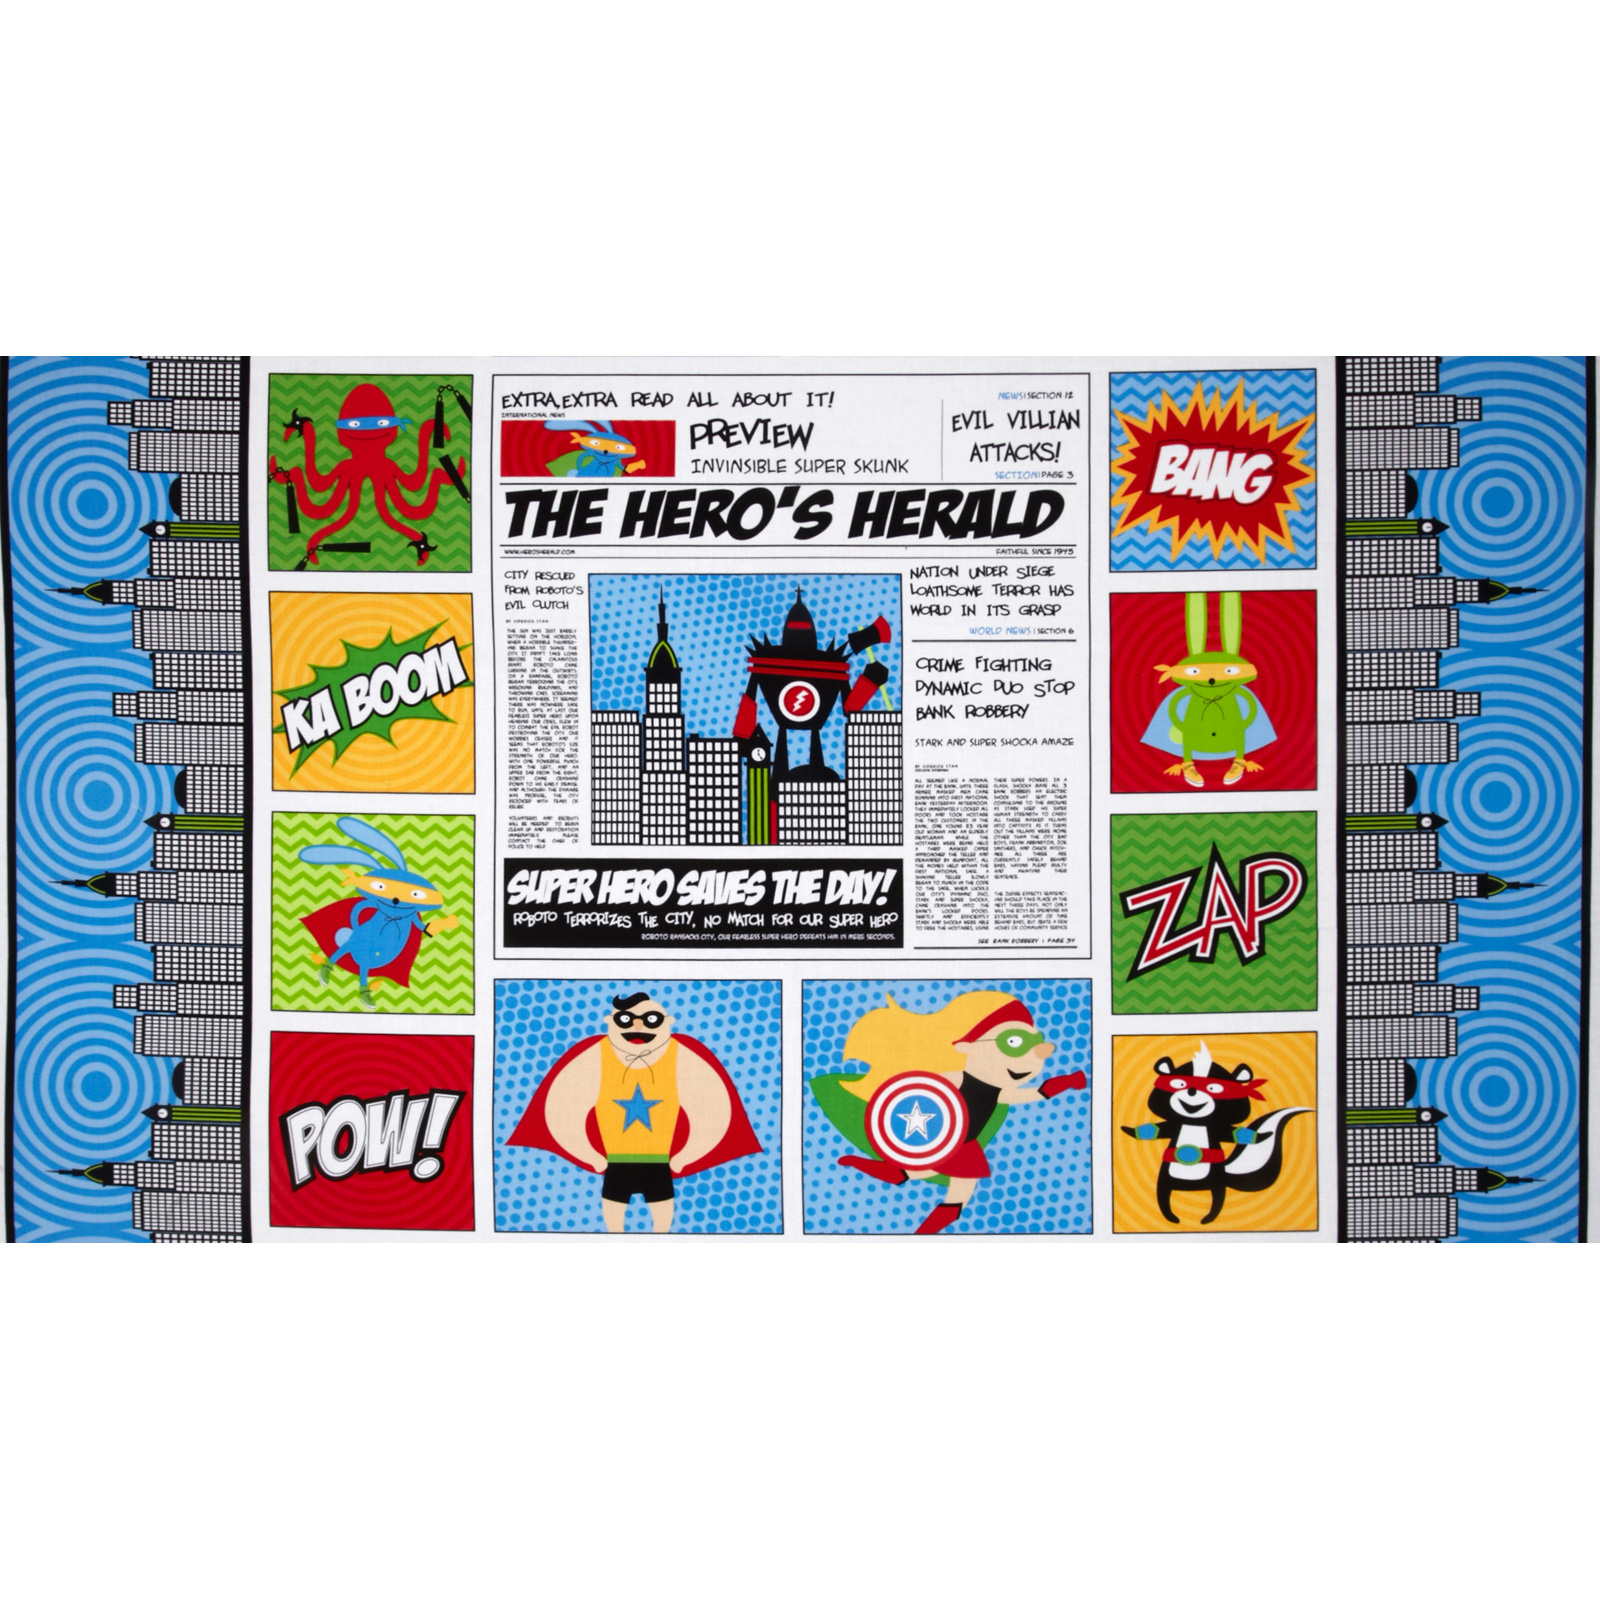 Superhero Adventure Newspaper Panel Blue Fabric